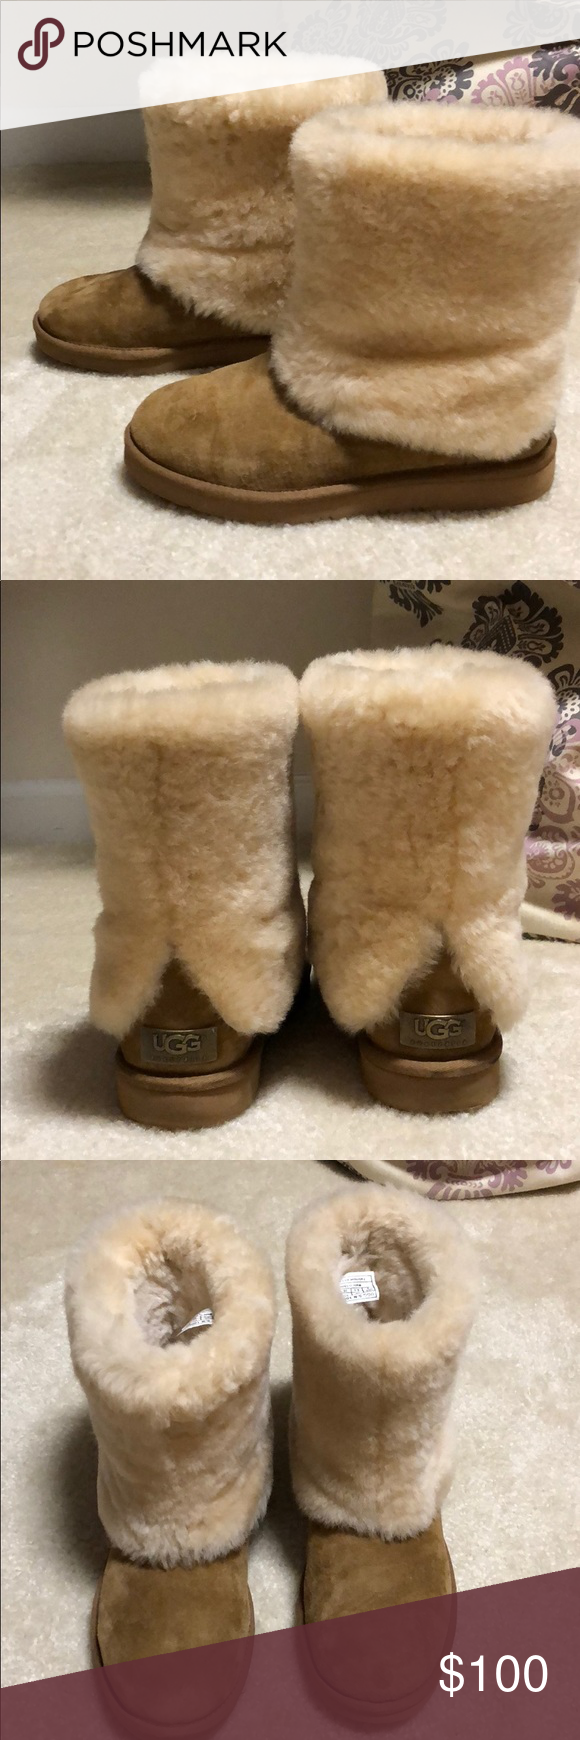 0aadb7d2c31 UGG Australia Patten Bootie Great used condition. Barely worn ...